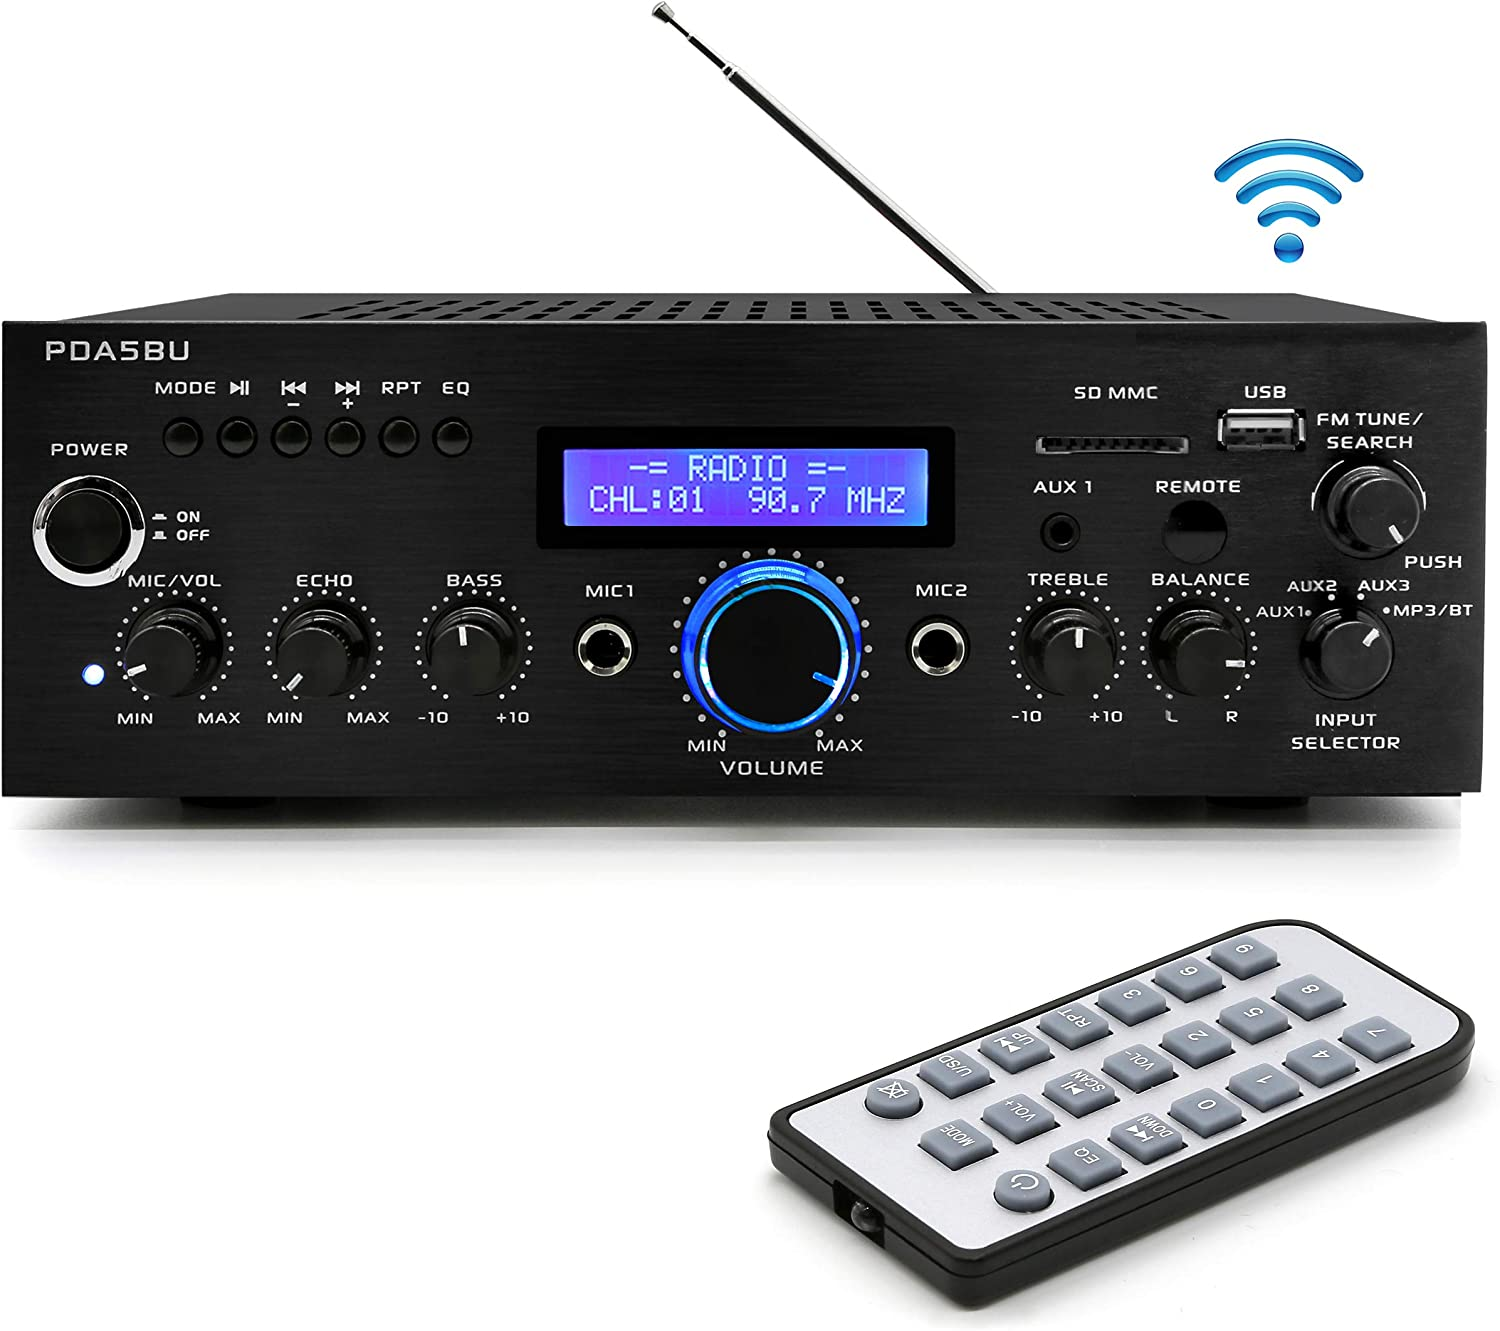 Pyle200W Audio Stereo Receiver - Wireless Bluetooth Home Power Amplifier Home Entertainment System w/ AUX IN, USB Port, DVD CD Player, AM FM Radio, 2 Karaoke Microphone Input, Remote - PDA5BU.0